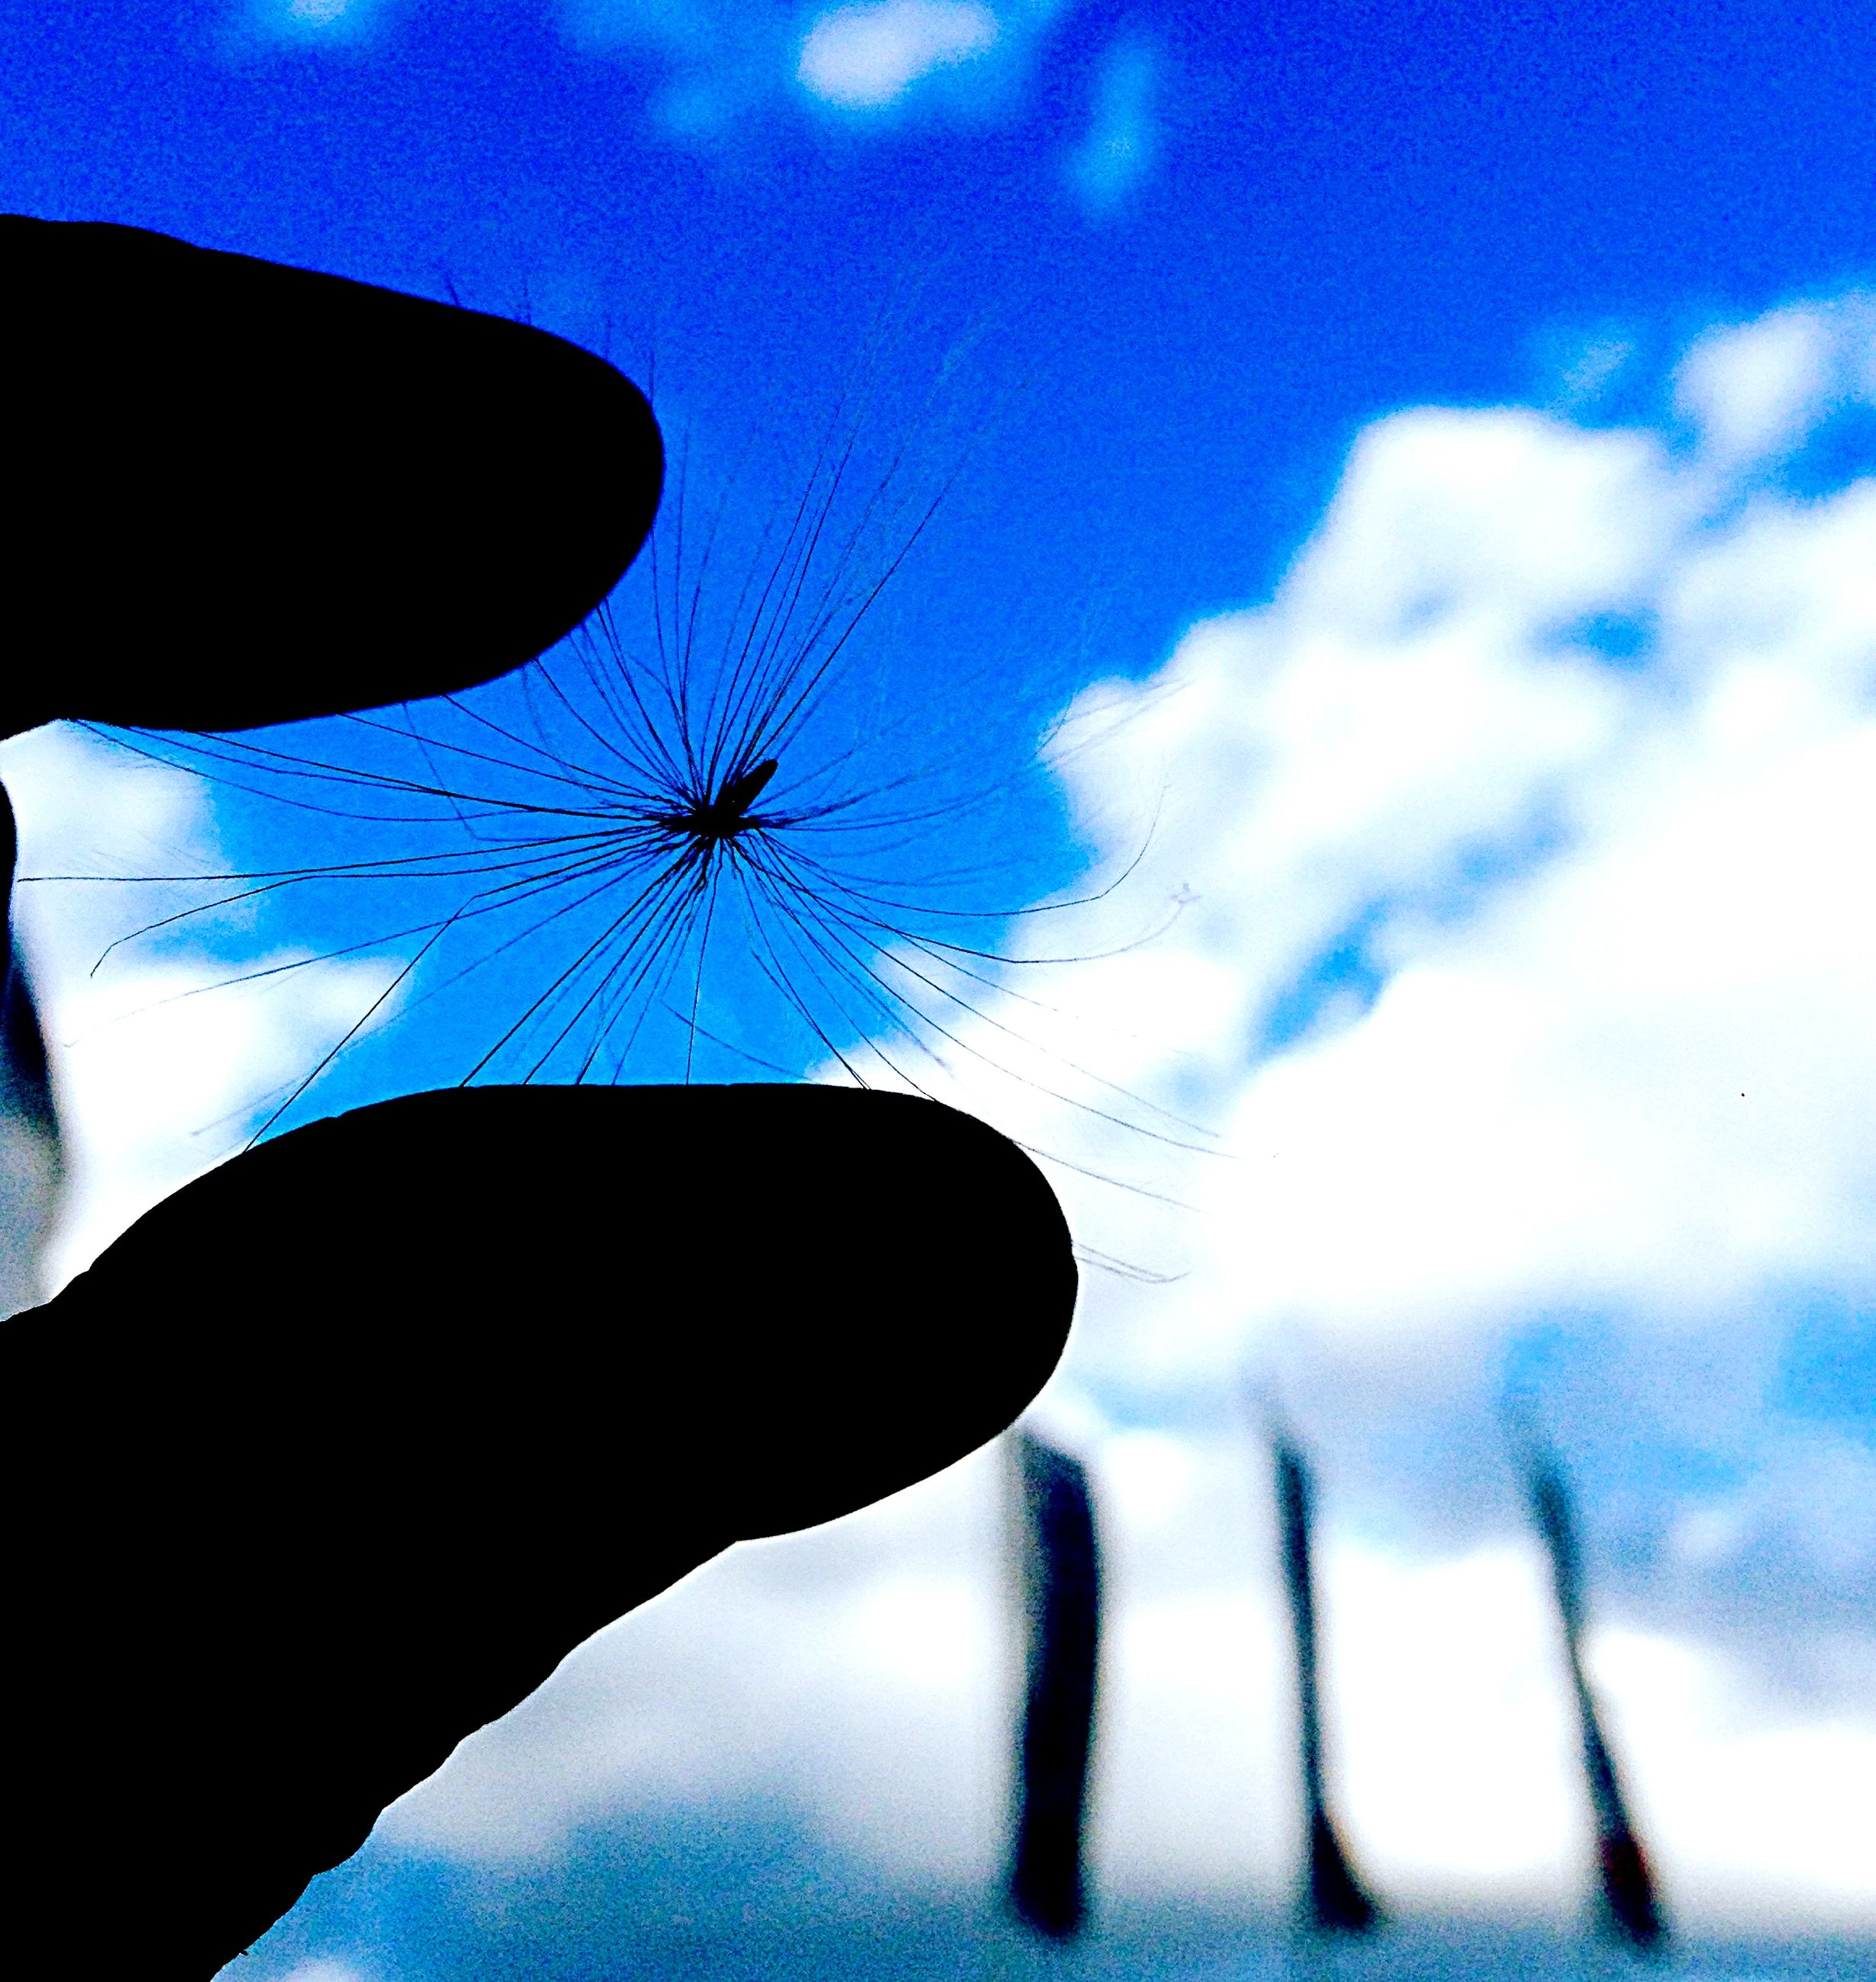 low angle view, sky, silhouette, blue, cloud - sky, cloud, insect, dusk, nature, close-up, outdoors, part of, no people, day, beauty in nature, auto post production filter, cloudy, wildlife, animal themes, person